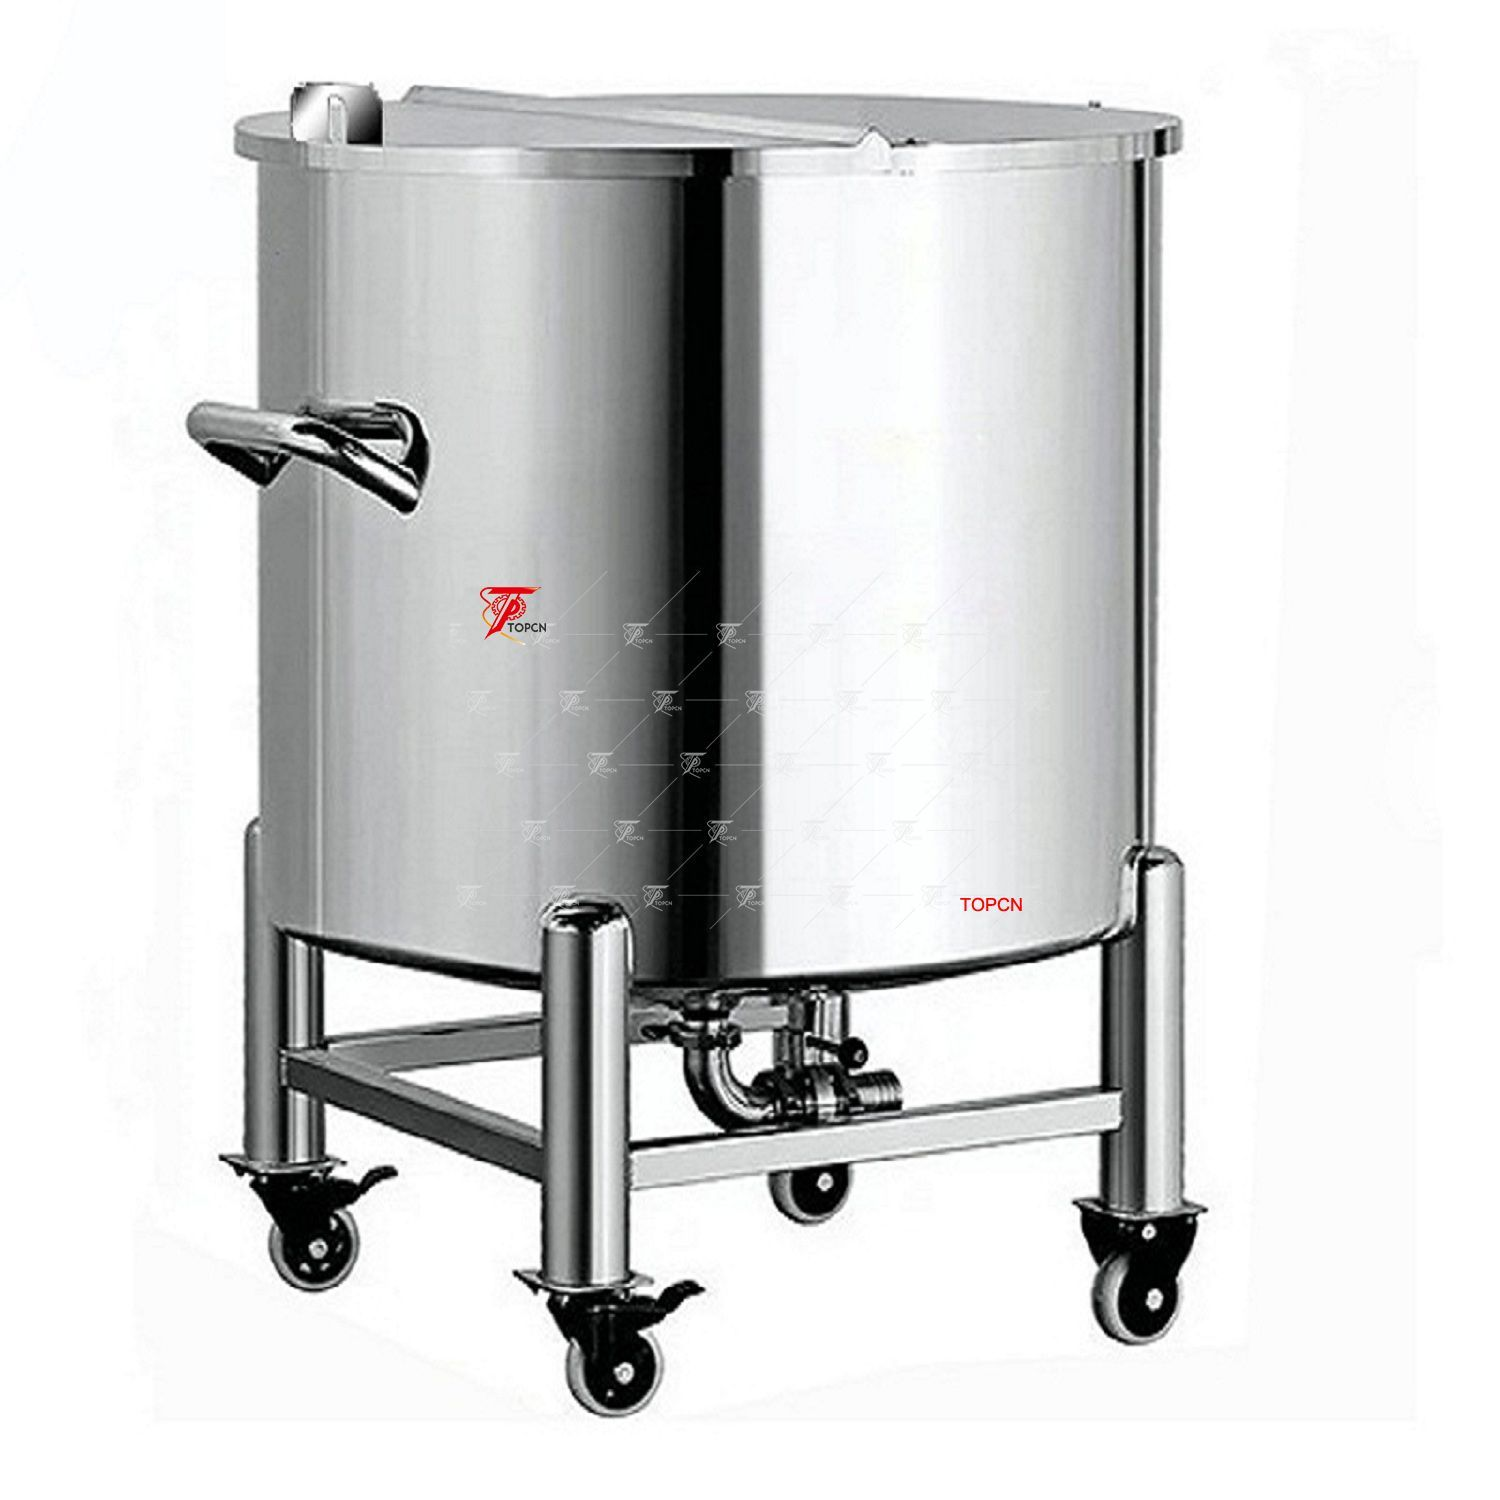 Single Layer Stainless Steel Container Top Open Water Storage Tankwidely Use In Foods Dairy Produ Storage Tank Stainless Steel Containers Stainless Steel Tanks